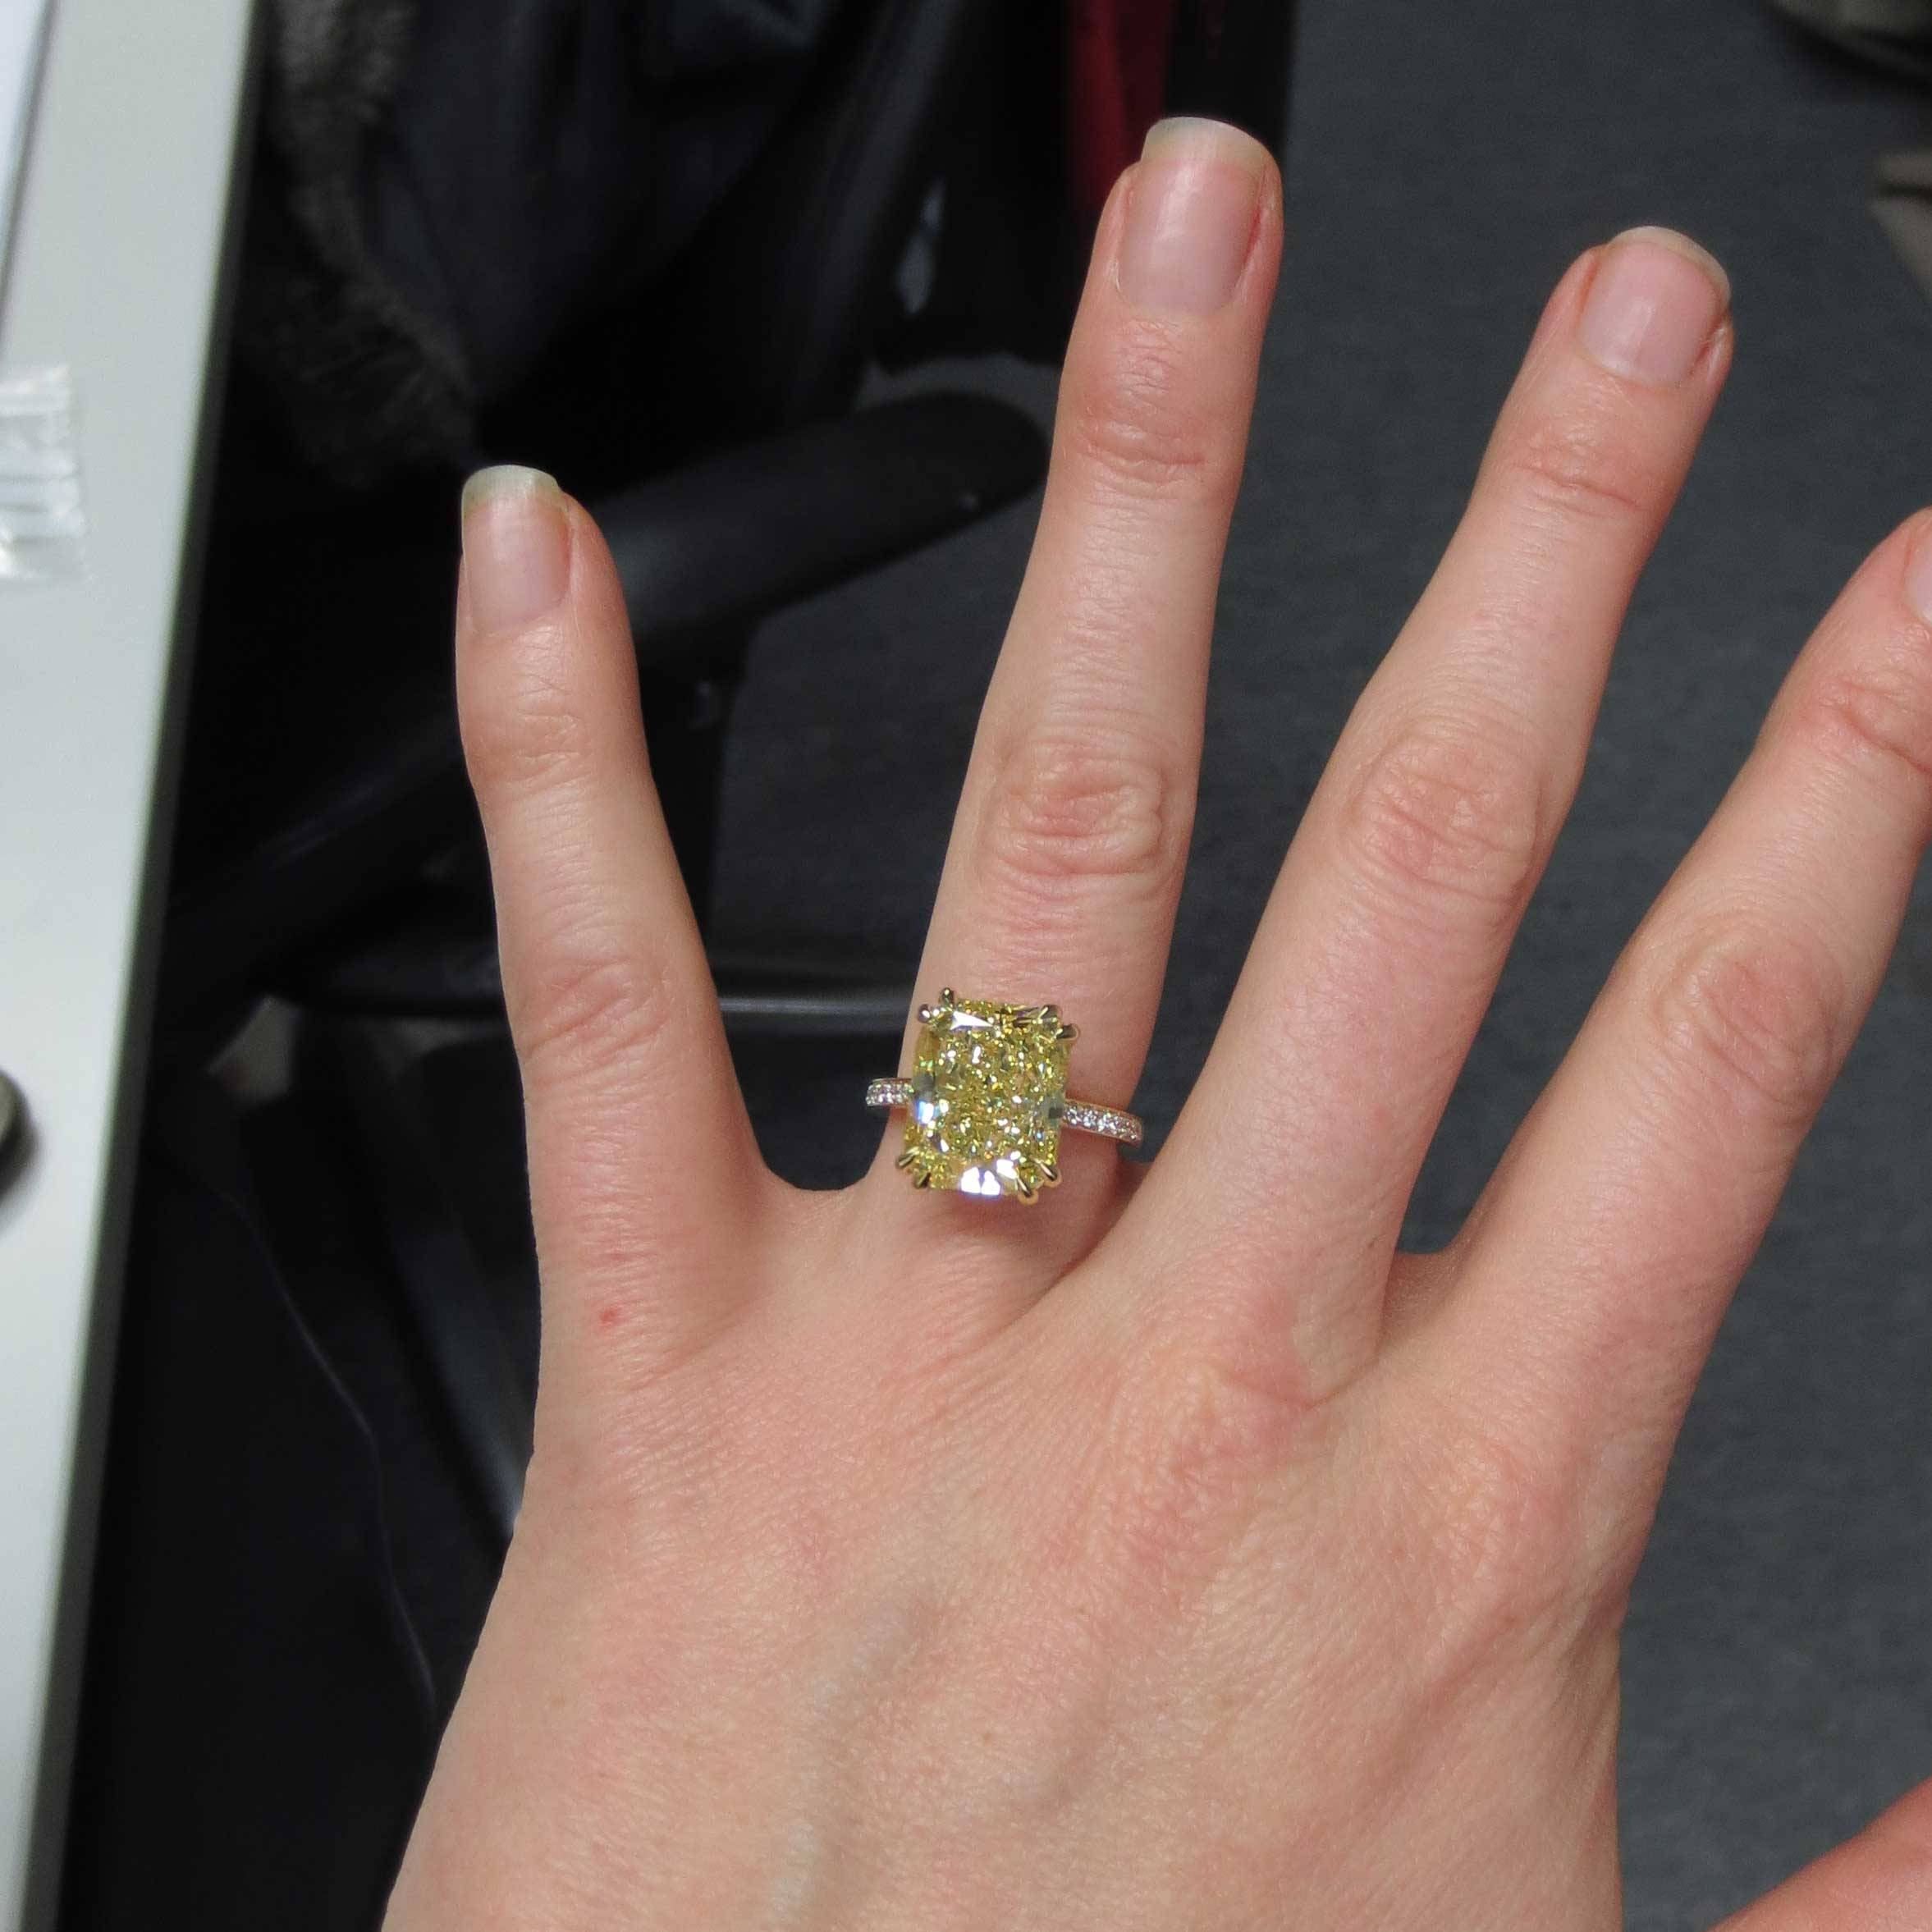 8 Carat Radiant Cut Diamond – Heirloom London With Regard To 8 Carat Diamond Engagement Rings (Gallery 3 of 15)